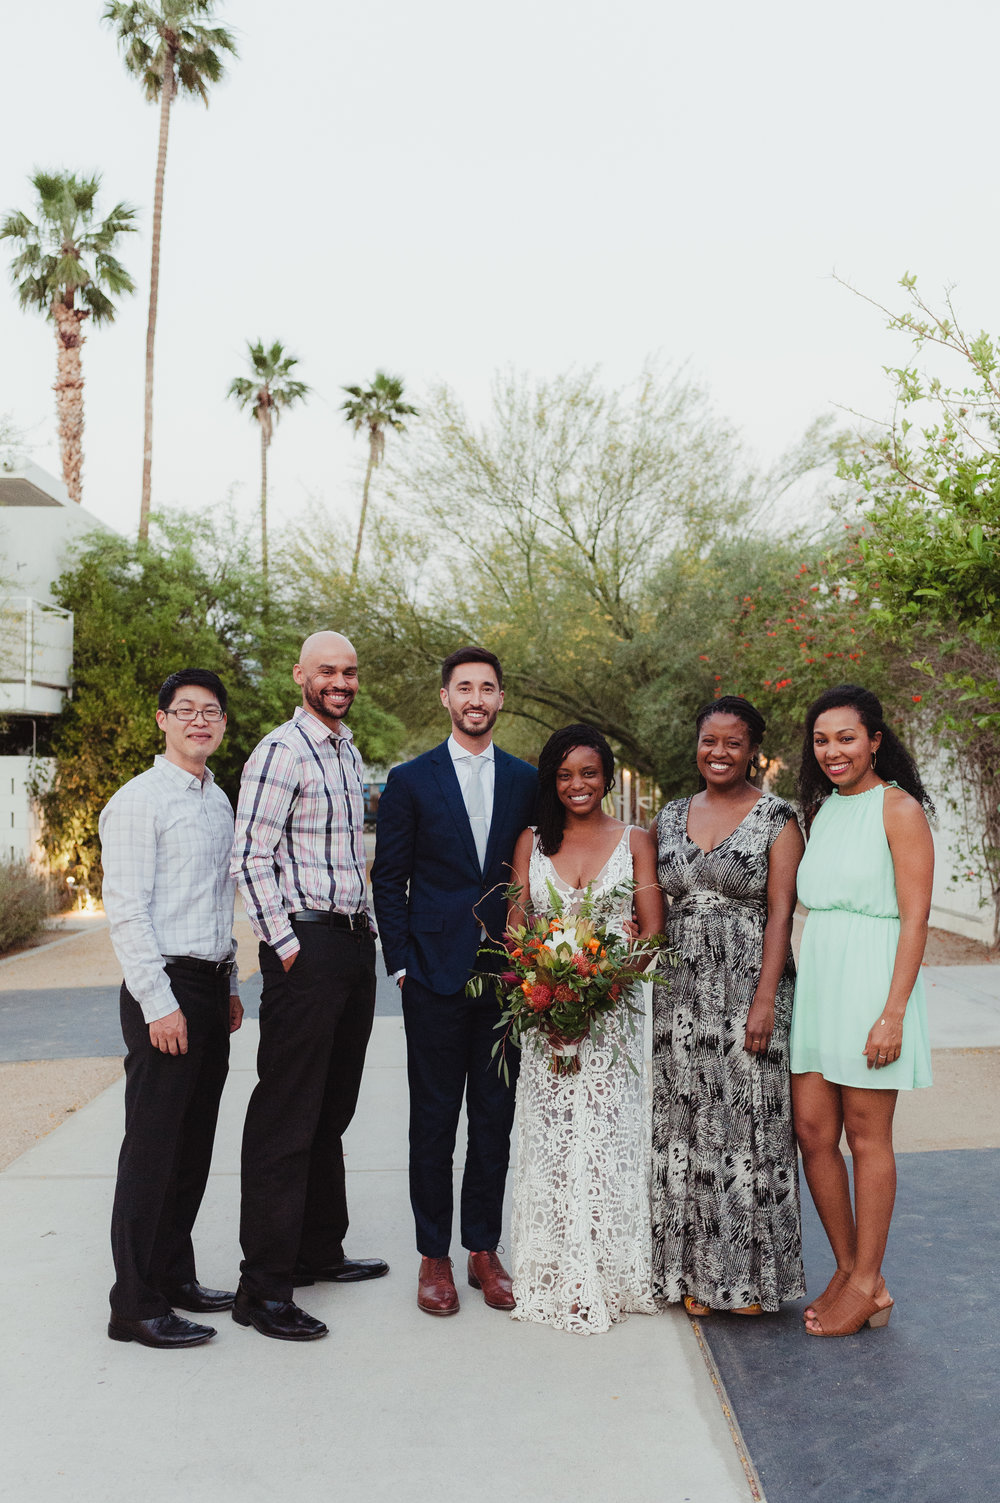 64-89-joshua-tree-ace-hotel-wedding-vivianchen-465.jpg